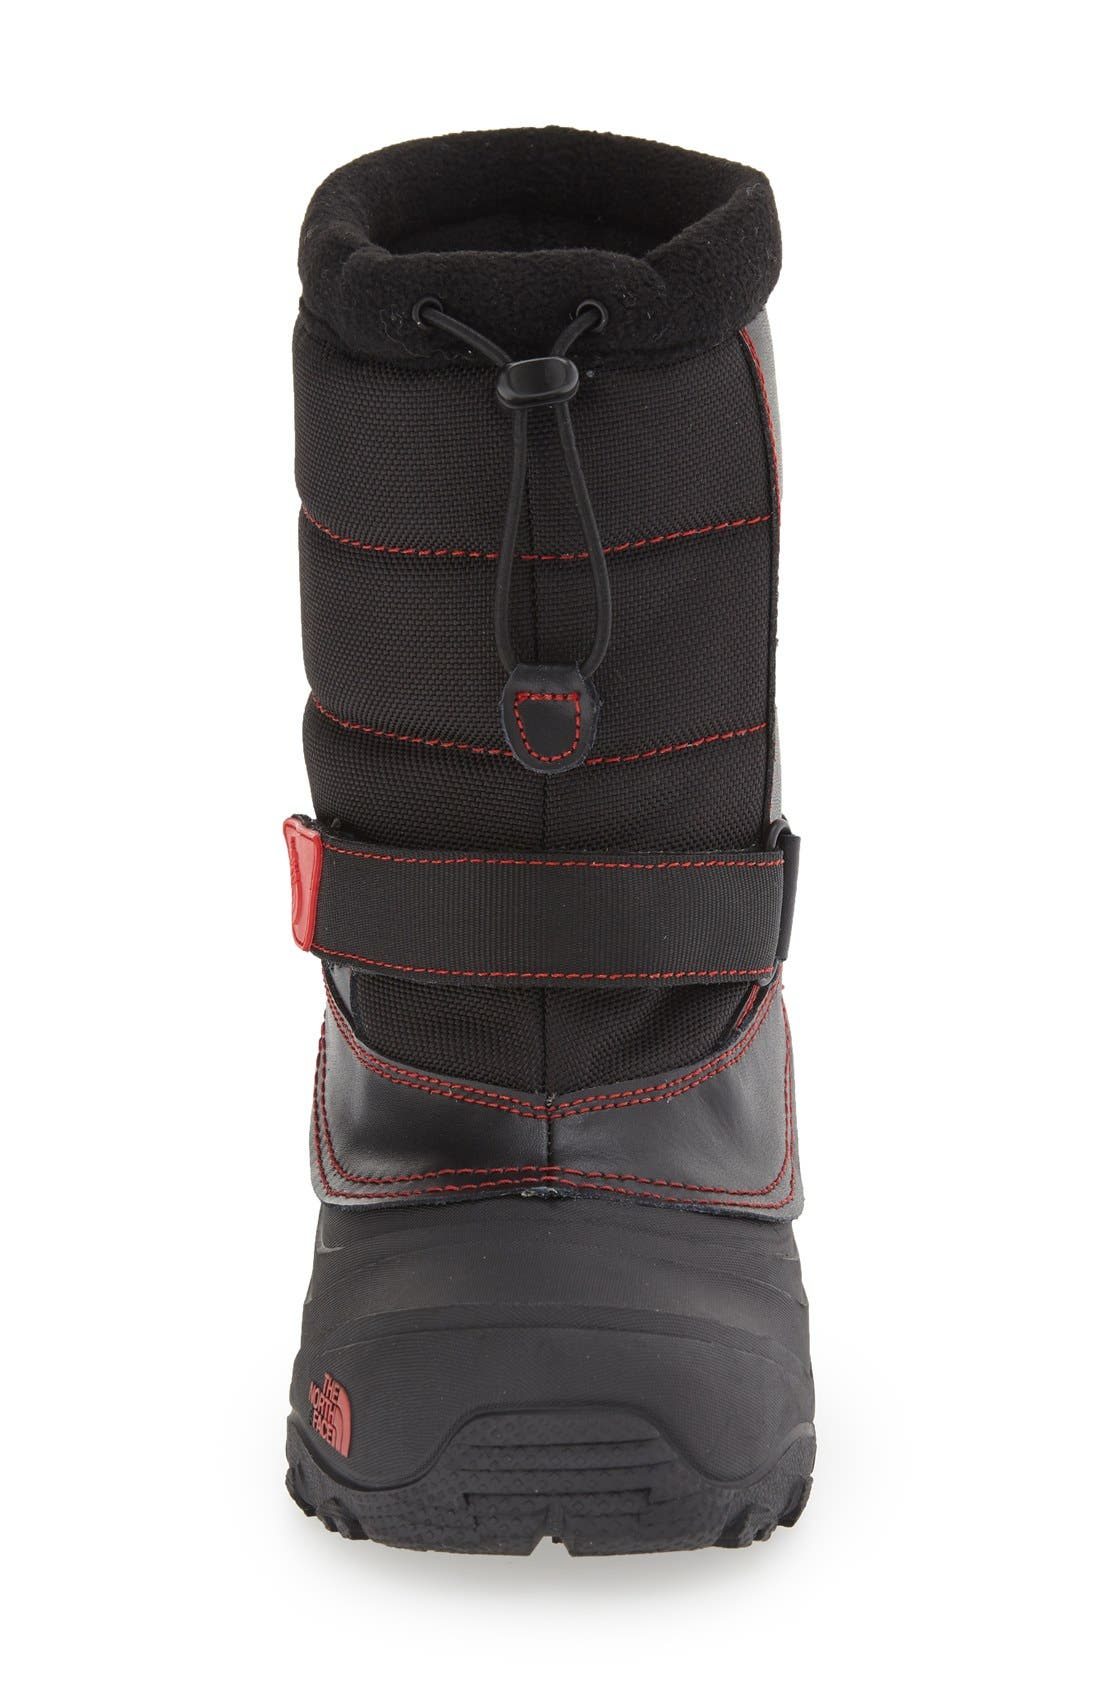 Alternate Image 3  - The North Face 'Alpenglow Extreme II' Waterproof Snow Boot (Toddler, Little Kid & Big Kid)